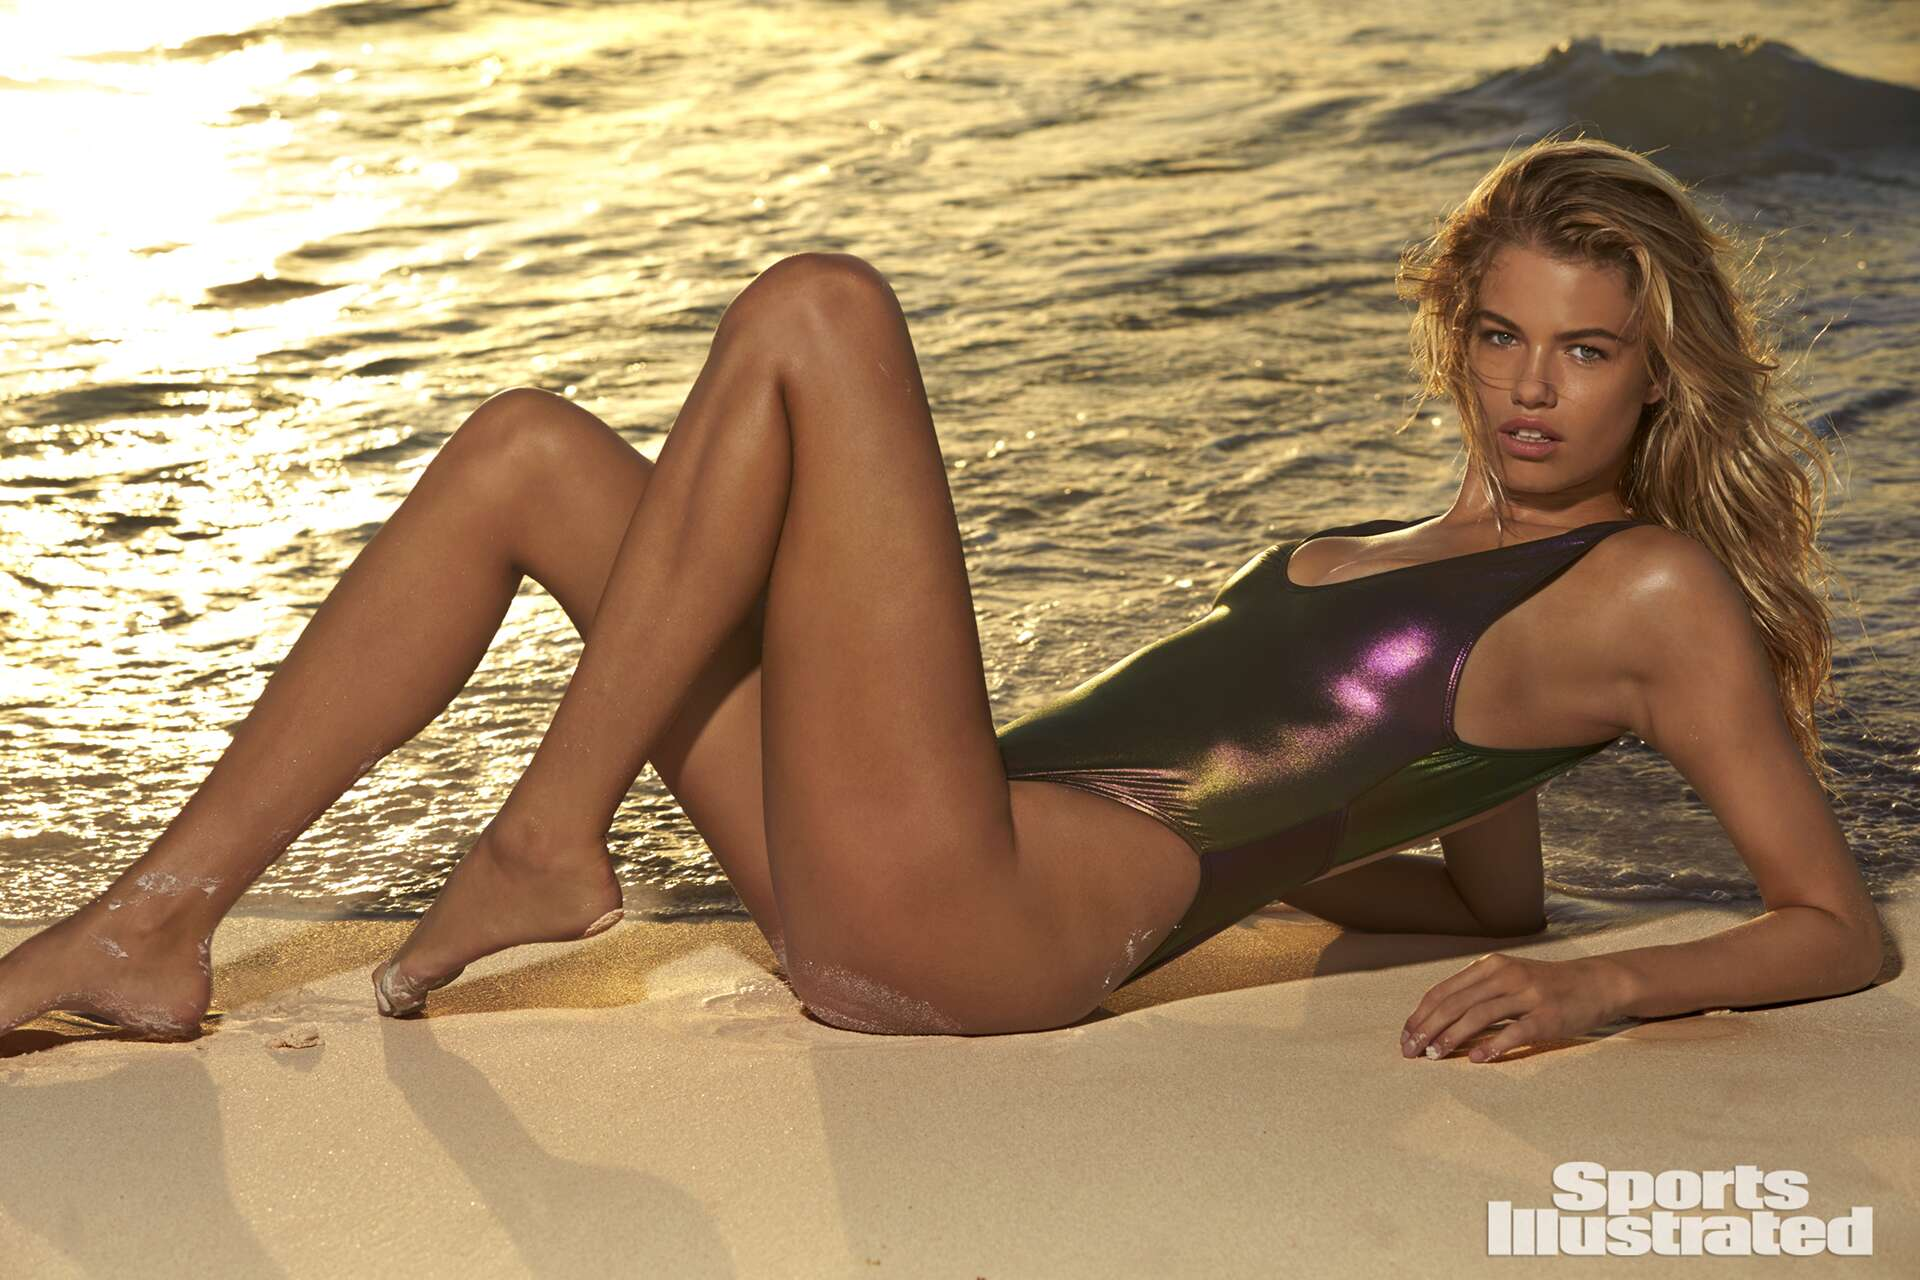 Hailey Clauson was photographed by Ben Watts in the Bahamas.